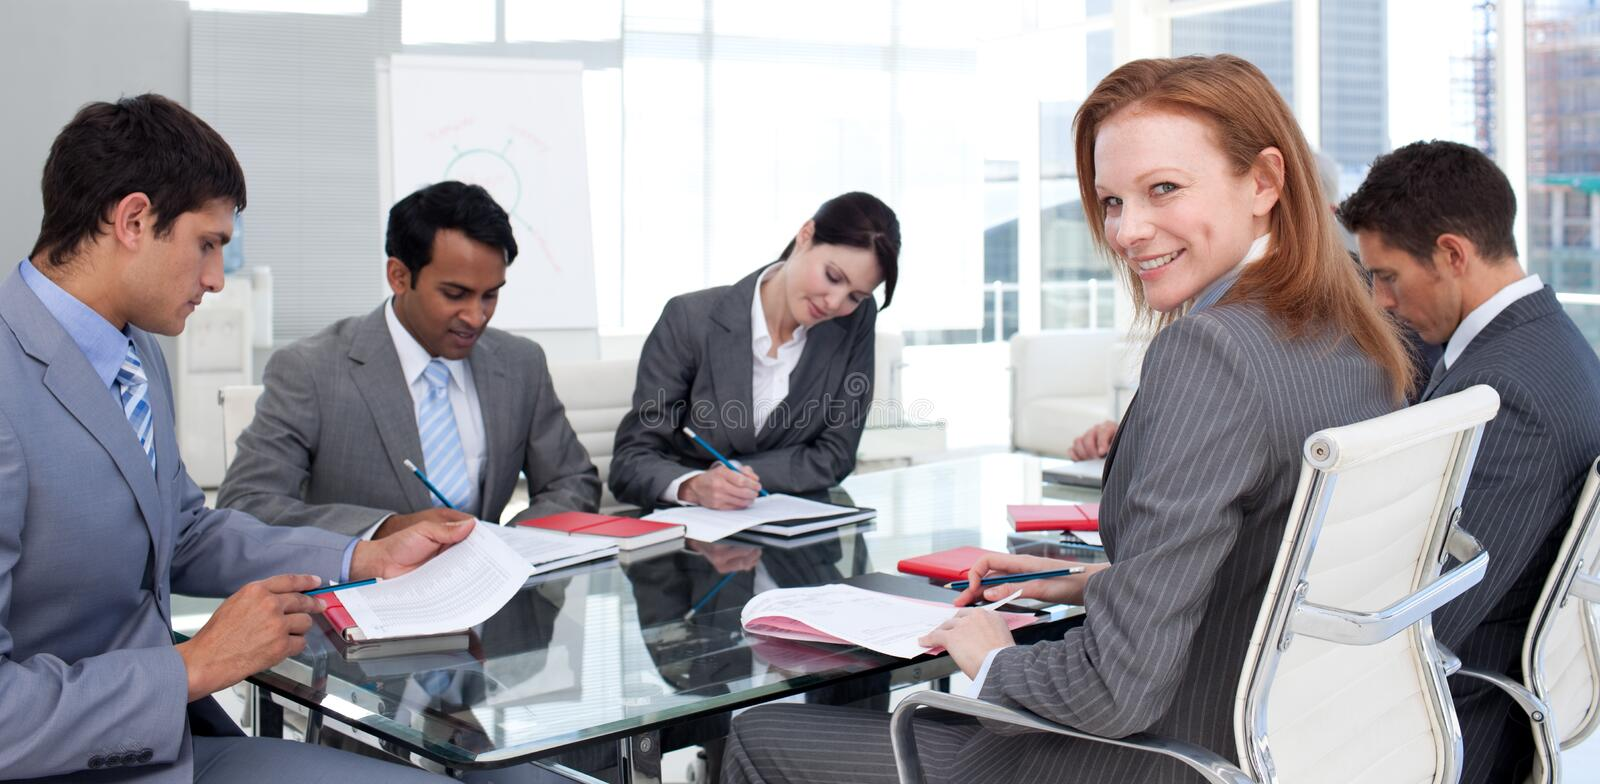 International Business Team In A Meeting Royalty Free Stock Photo